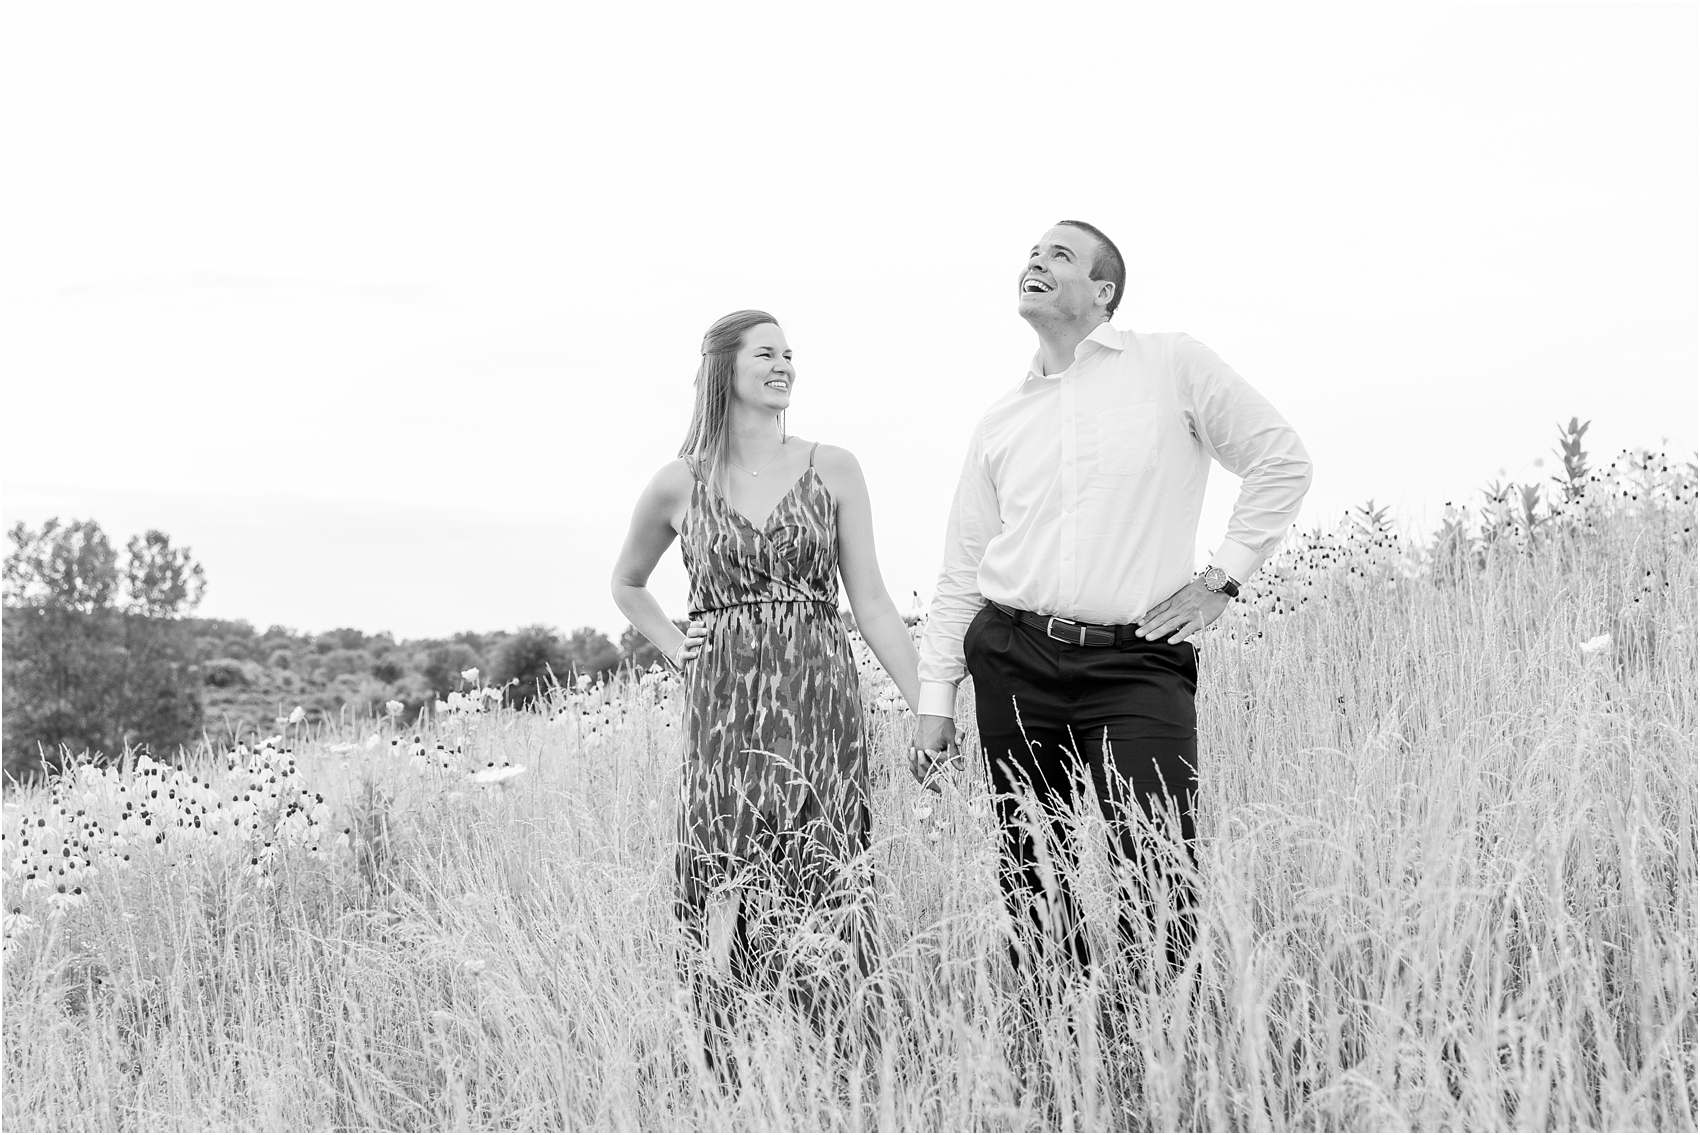 emotional-candid-romantic-engagement-photos-in-detroit-chicago-northern-michigan-by-courtney-carolyn-photography_0024.jpg